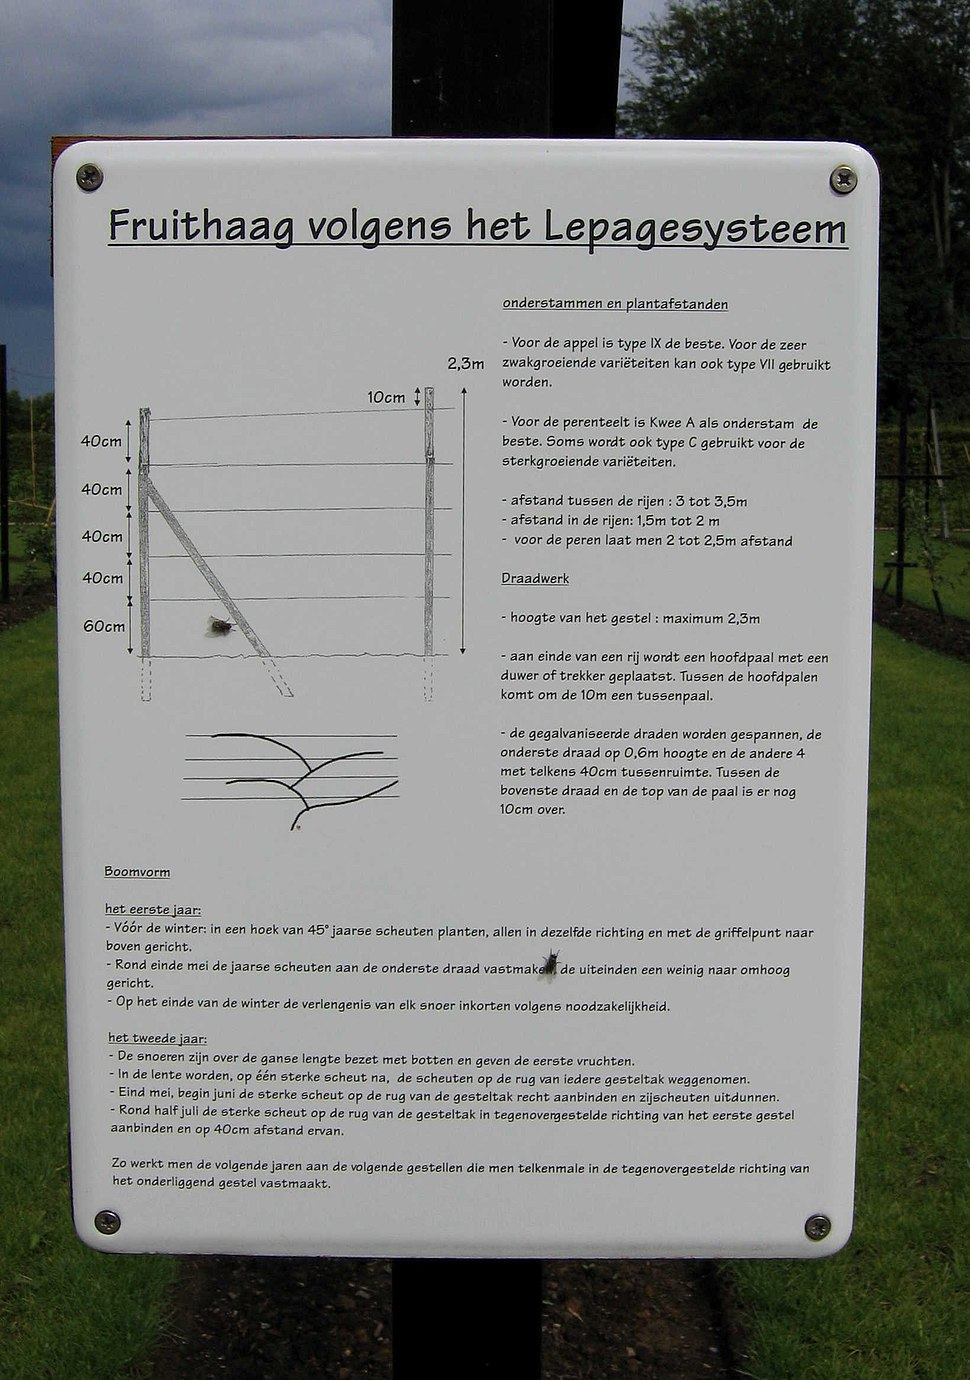 Lepage fruittreeform description